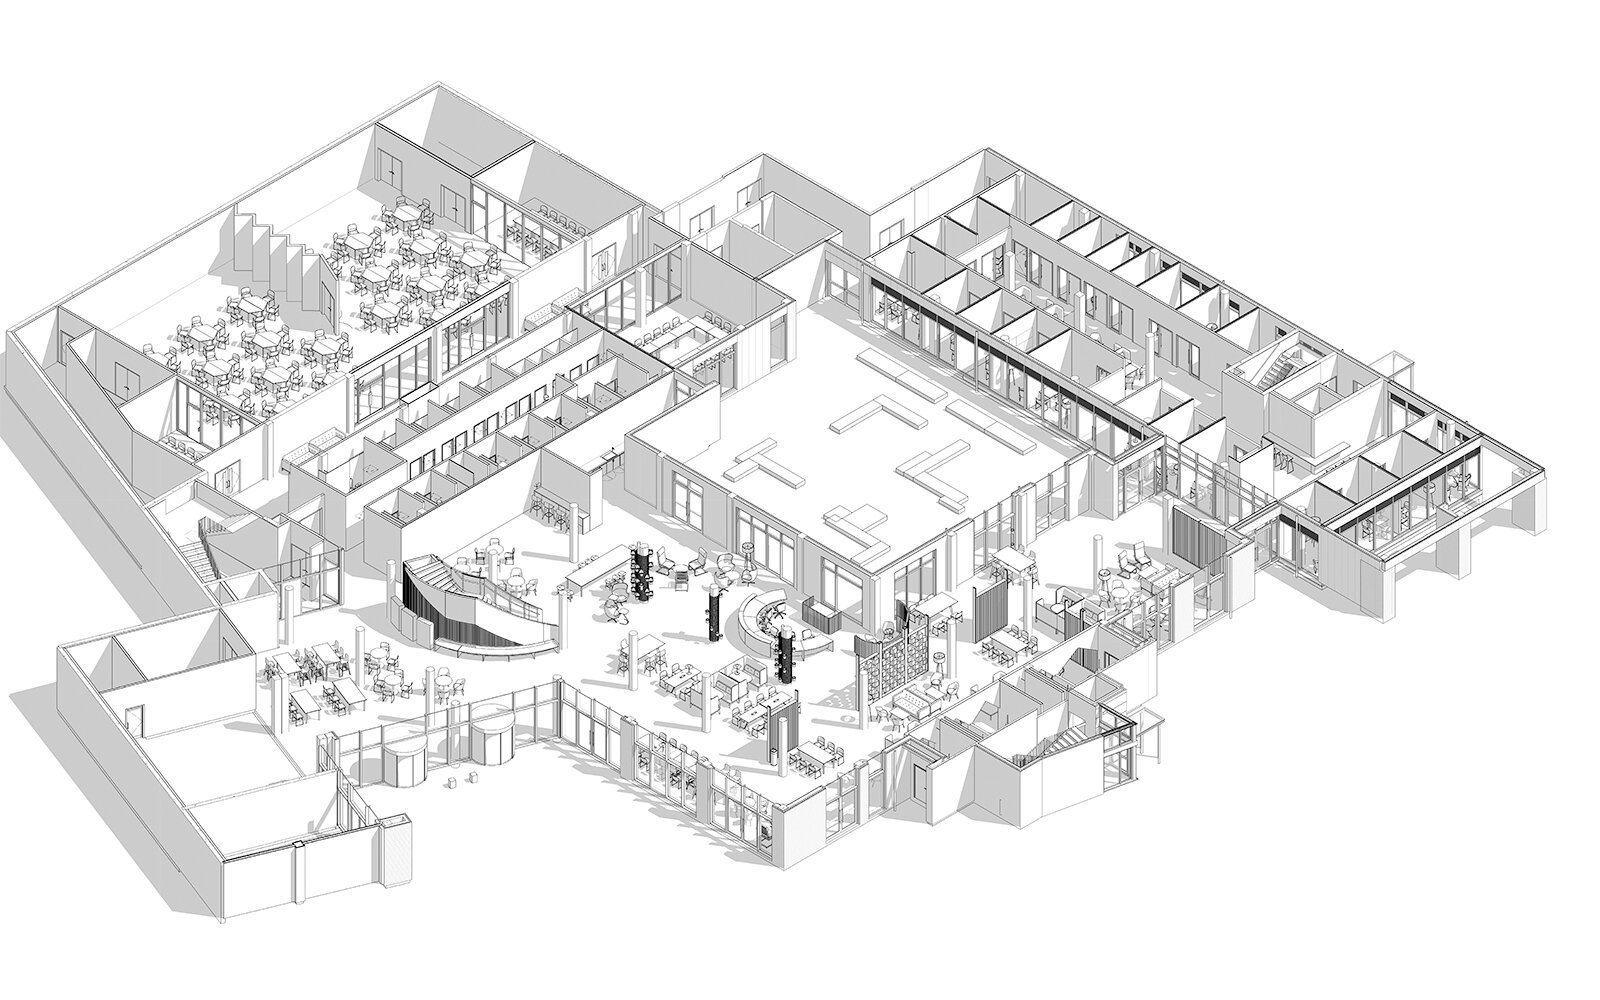 Axonometric view of the ground floor of the student centre